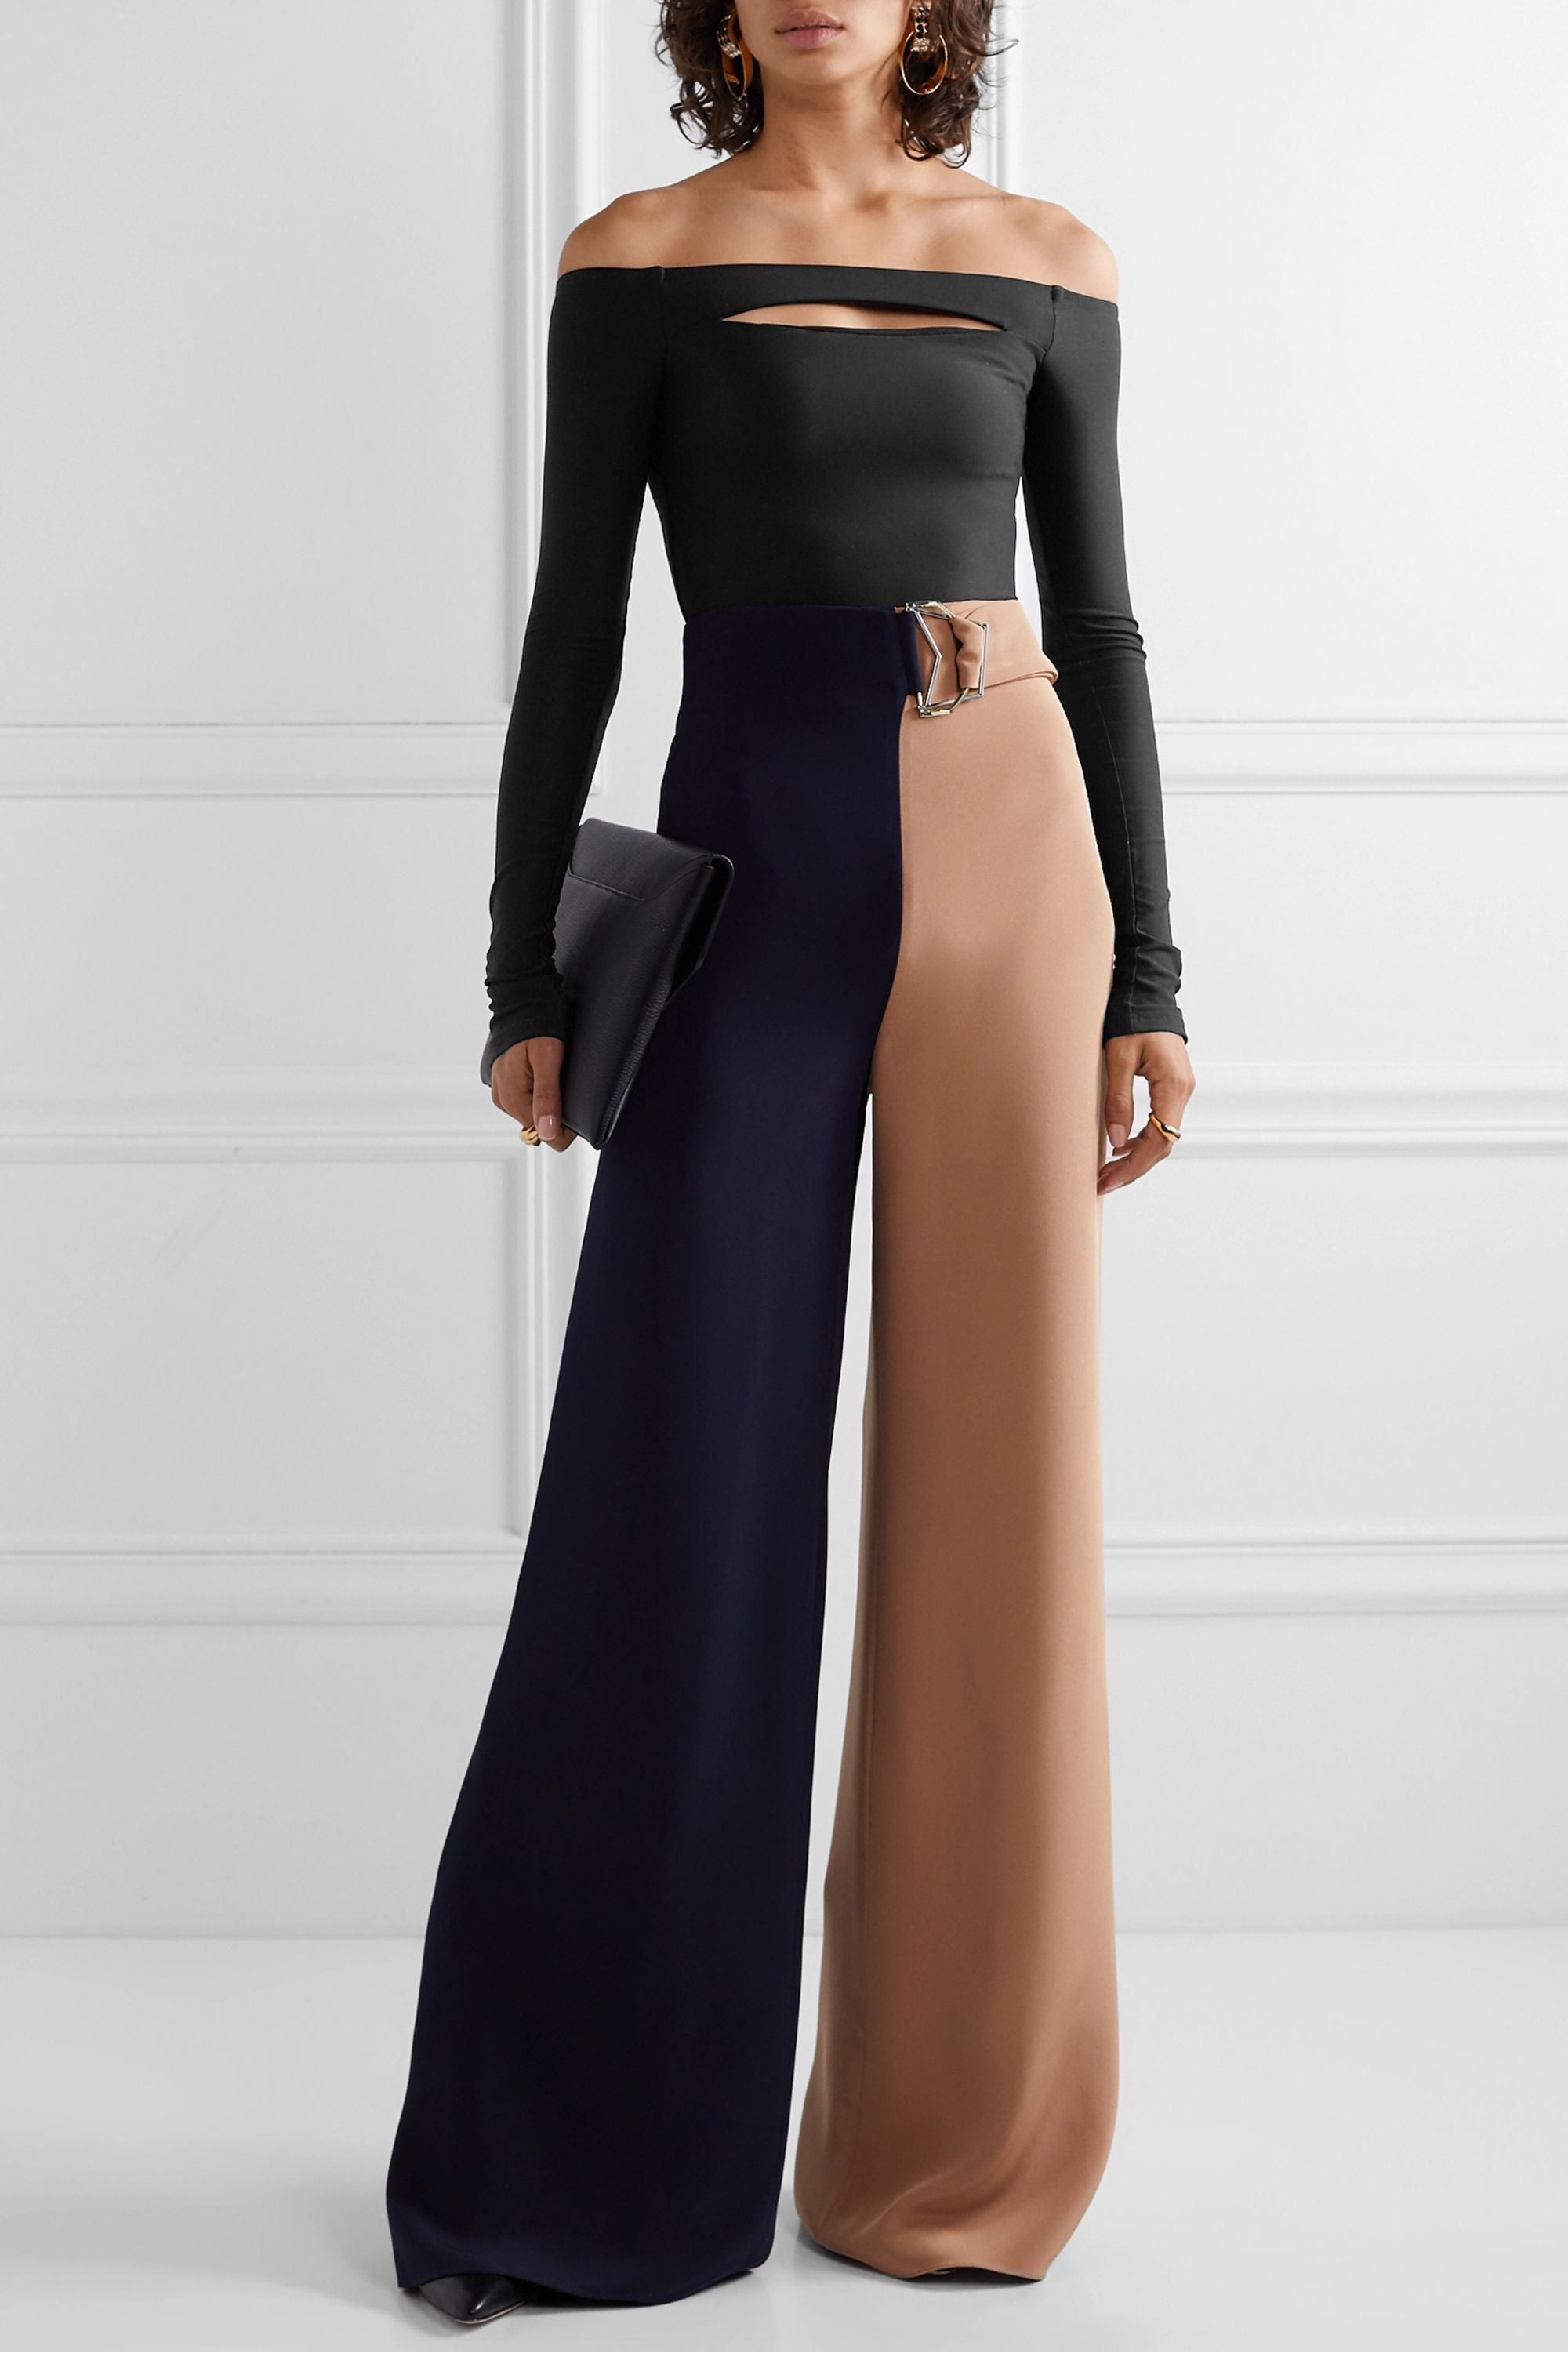 Alix NYC Vesey off-the-shoulder cutout stretch-jersey thong bodysuit